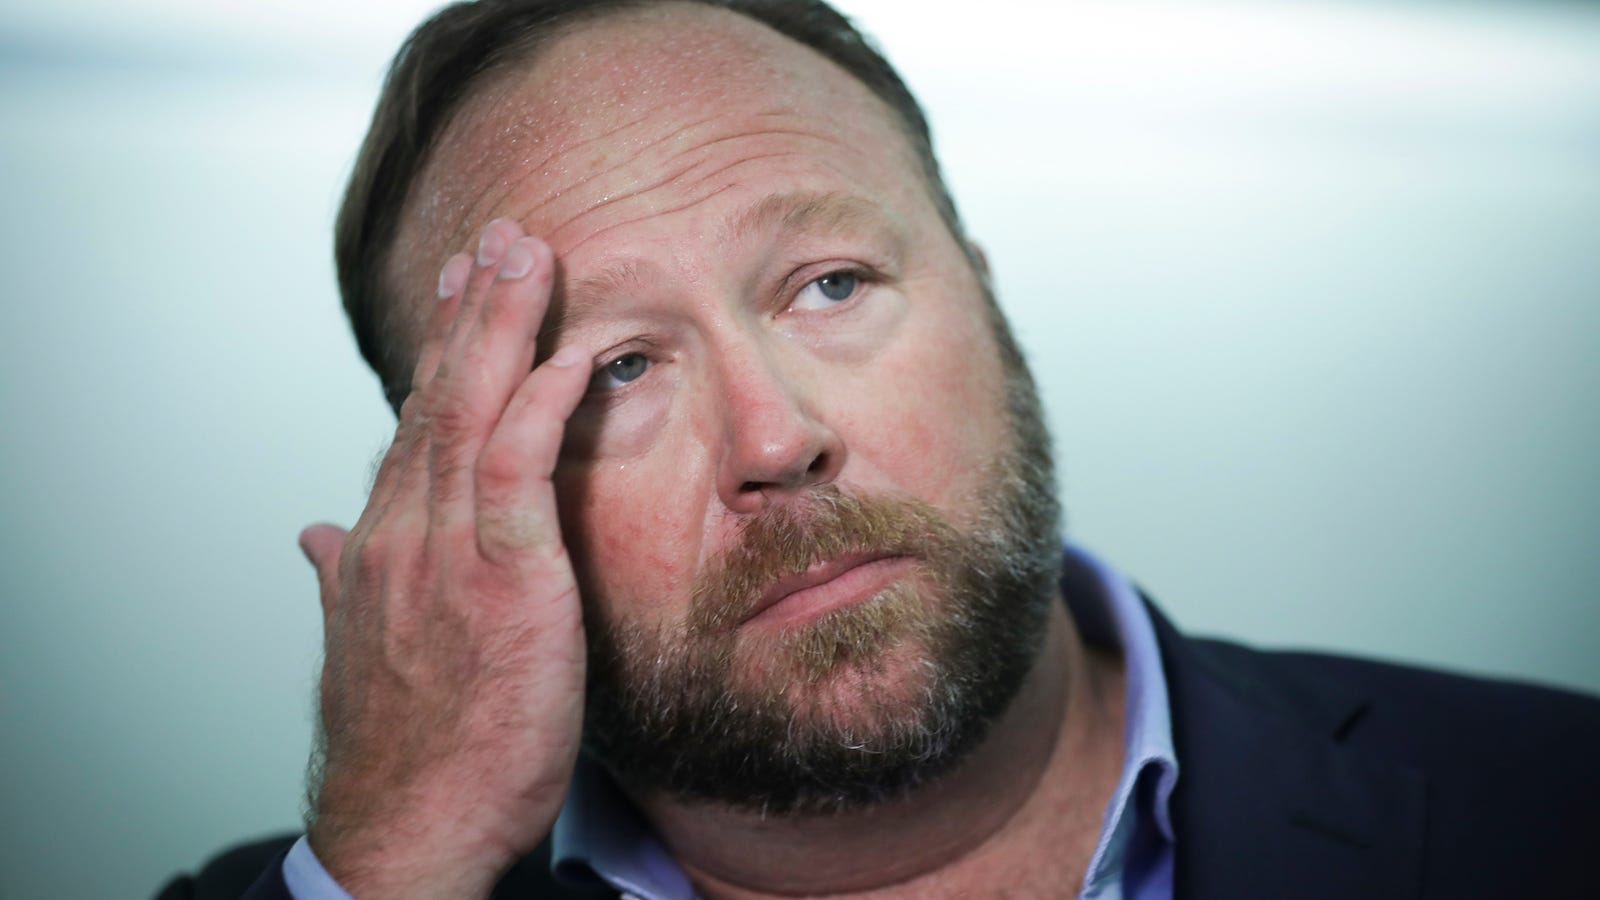 InfoWars Must Pay Pepe the Frog Creator $15,000, Never Sell Pepe Merch Again in Settlement